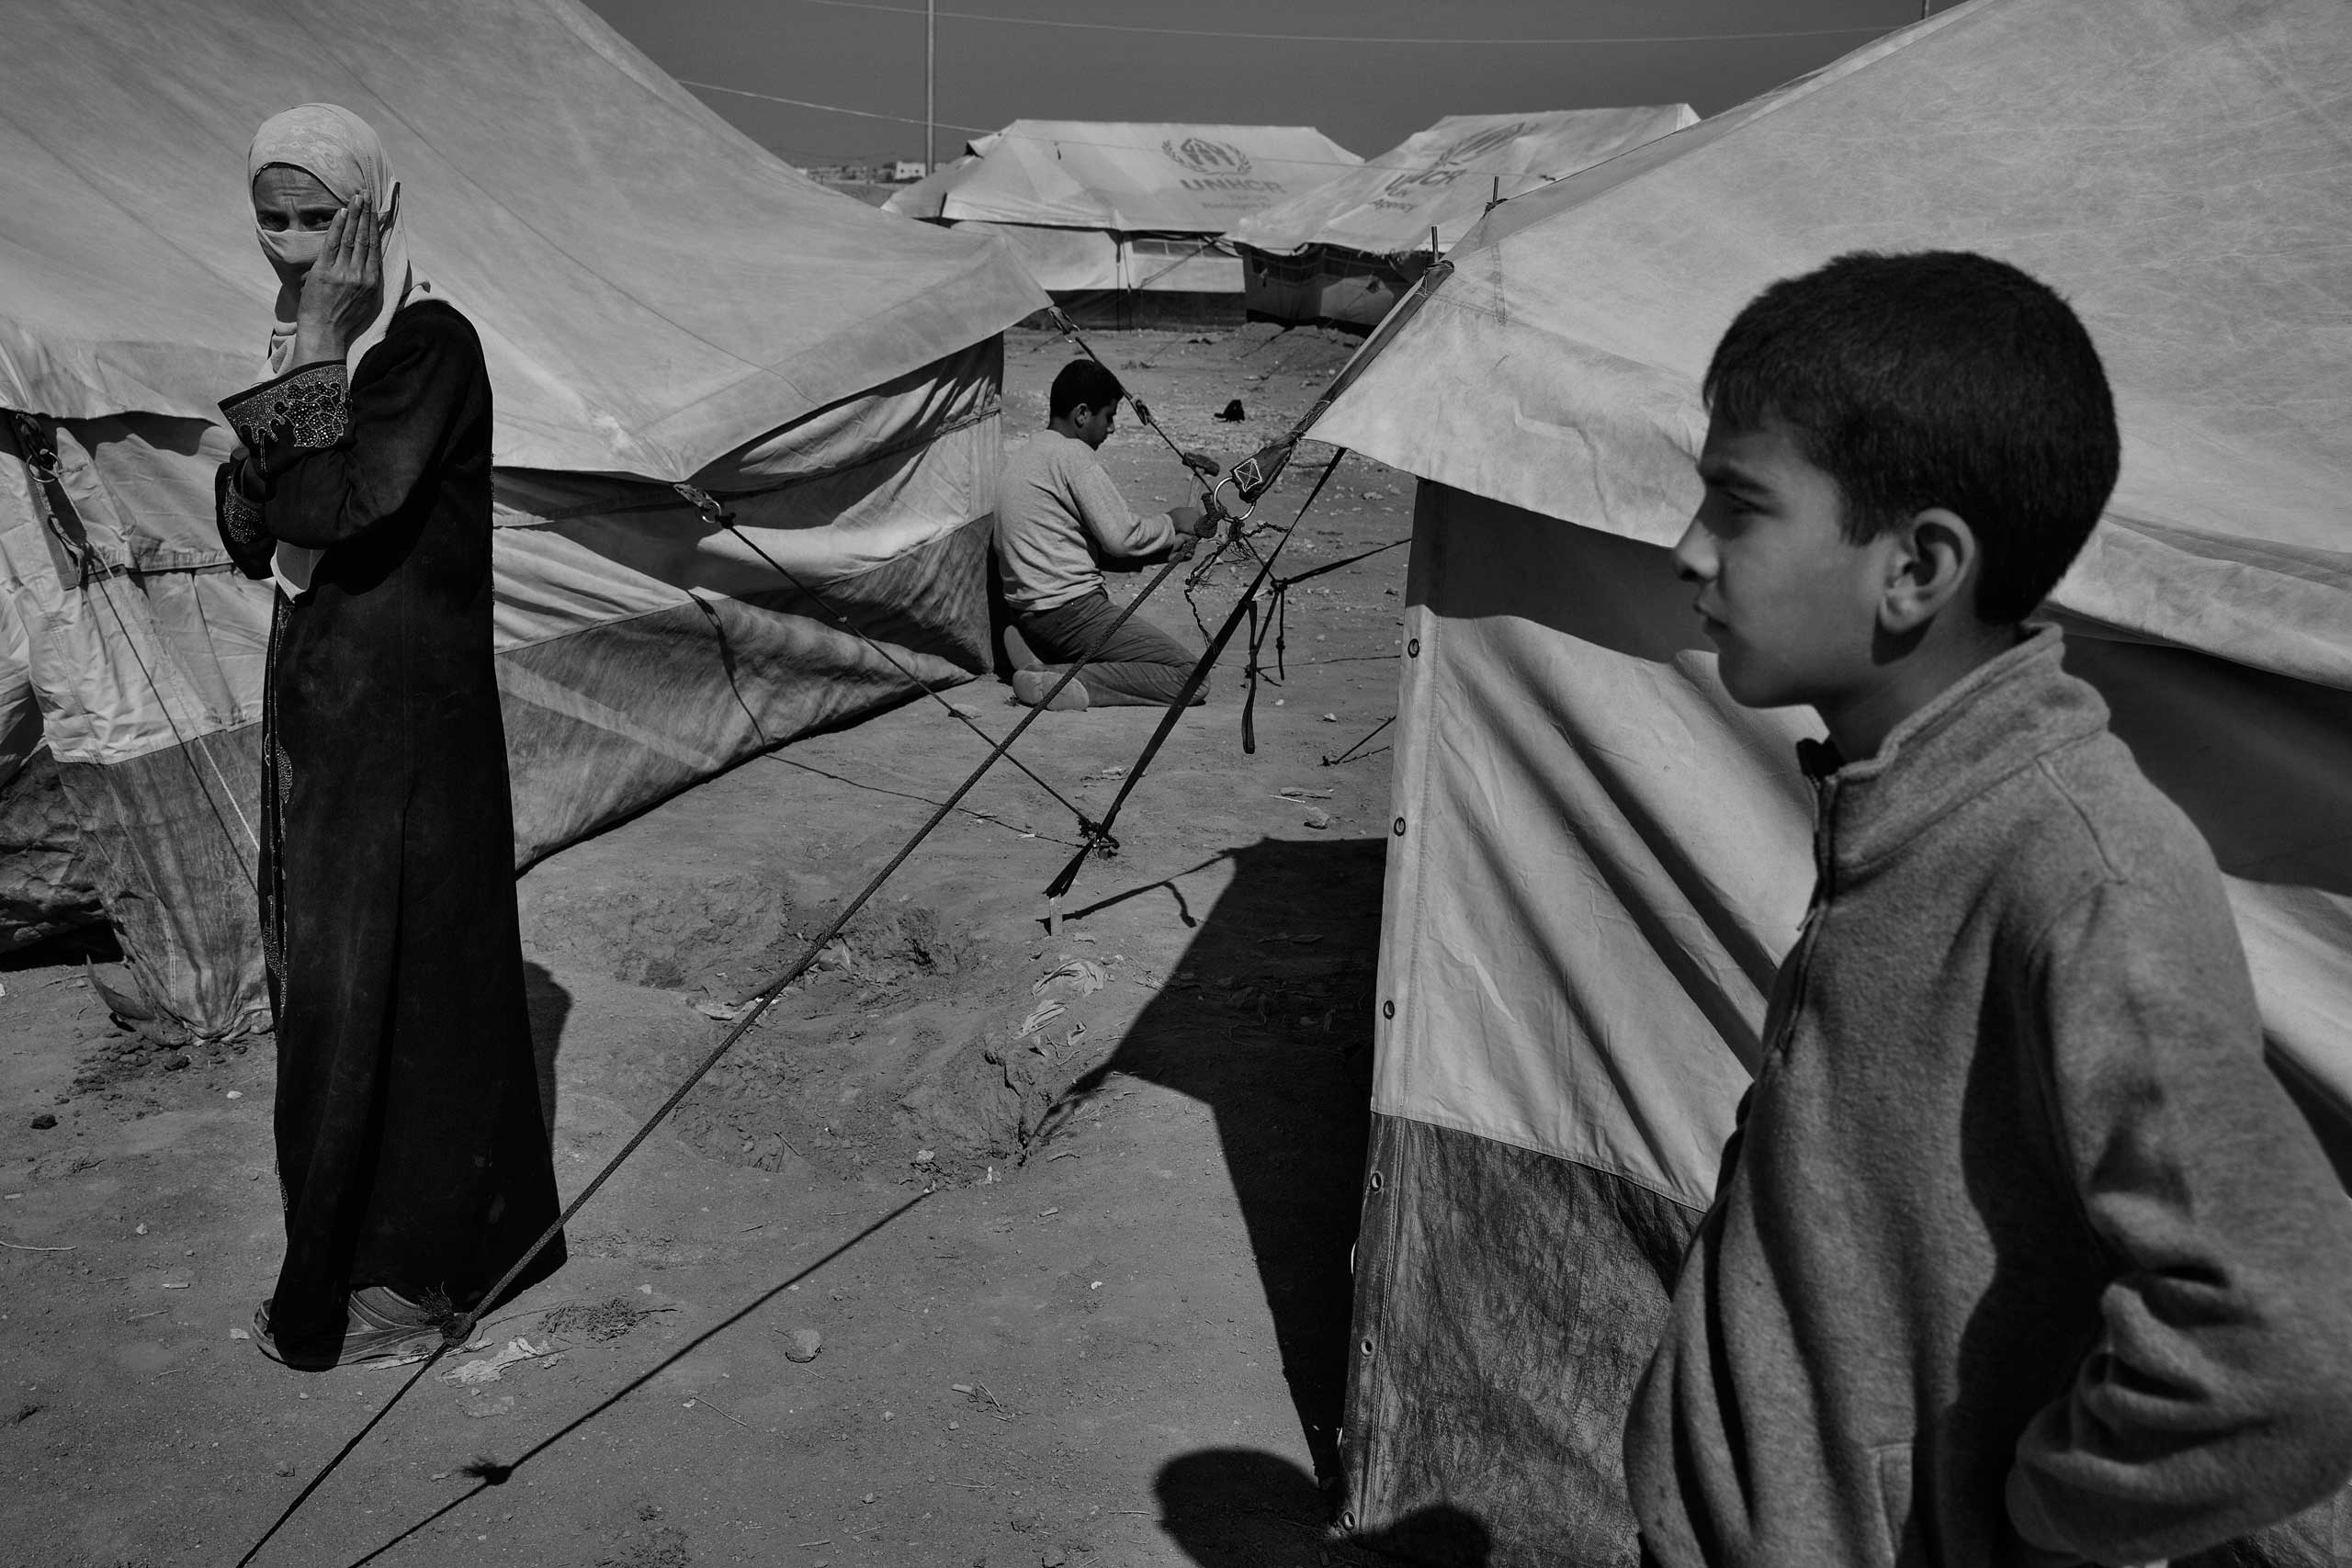 December 2013. Za'atari refugee camp, Jordan. New arrivals from Syria setting up tents supplied by the United Nations High Commissioner for Refugees.